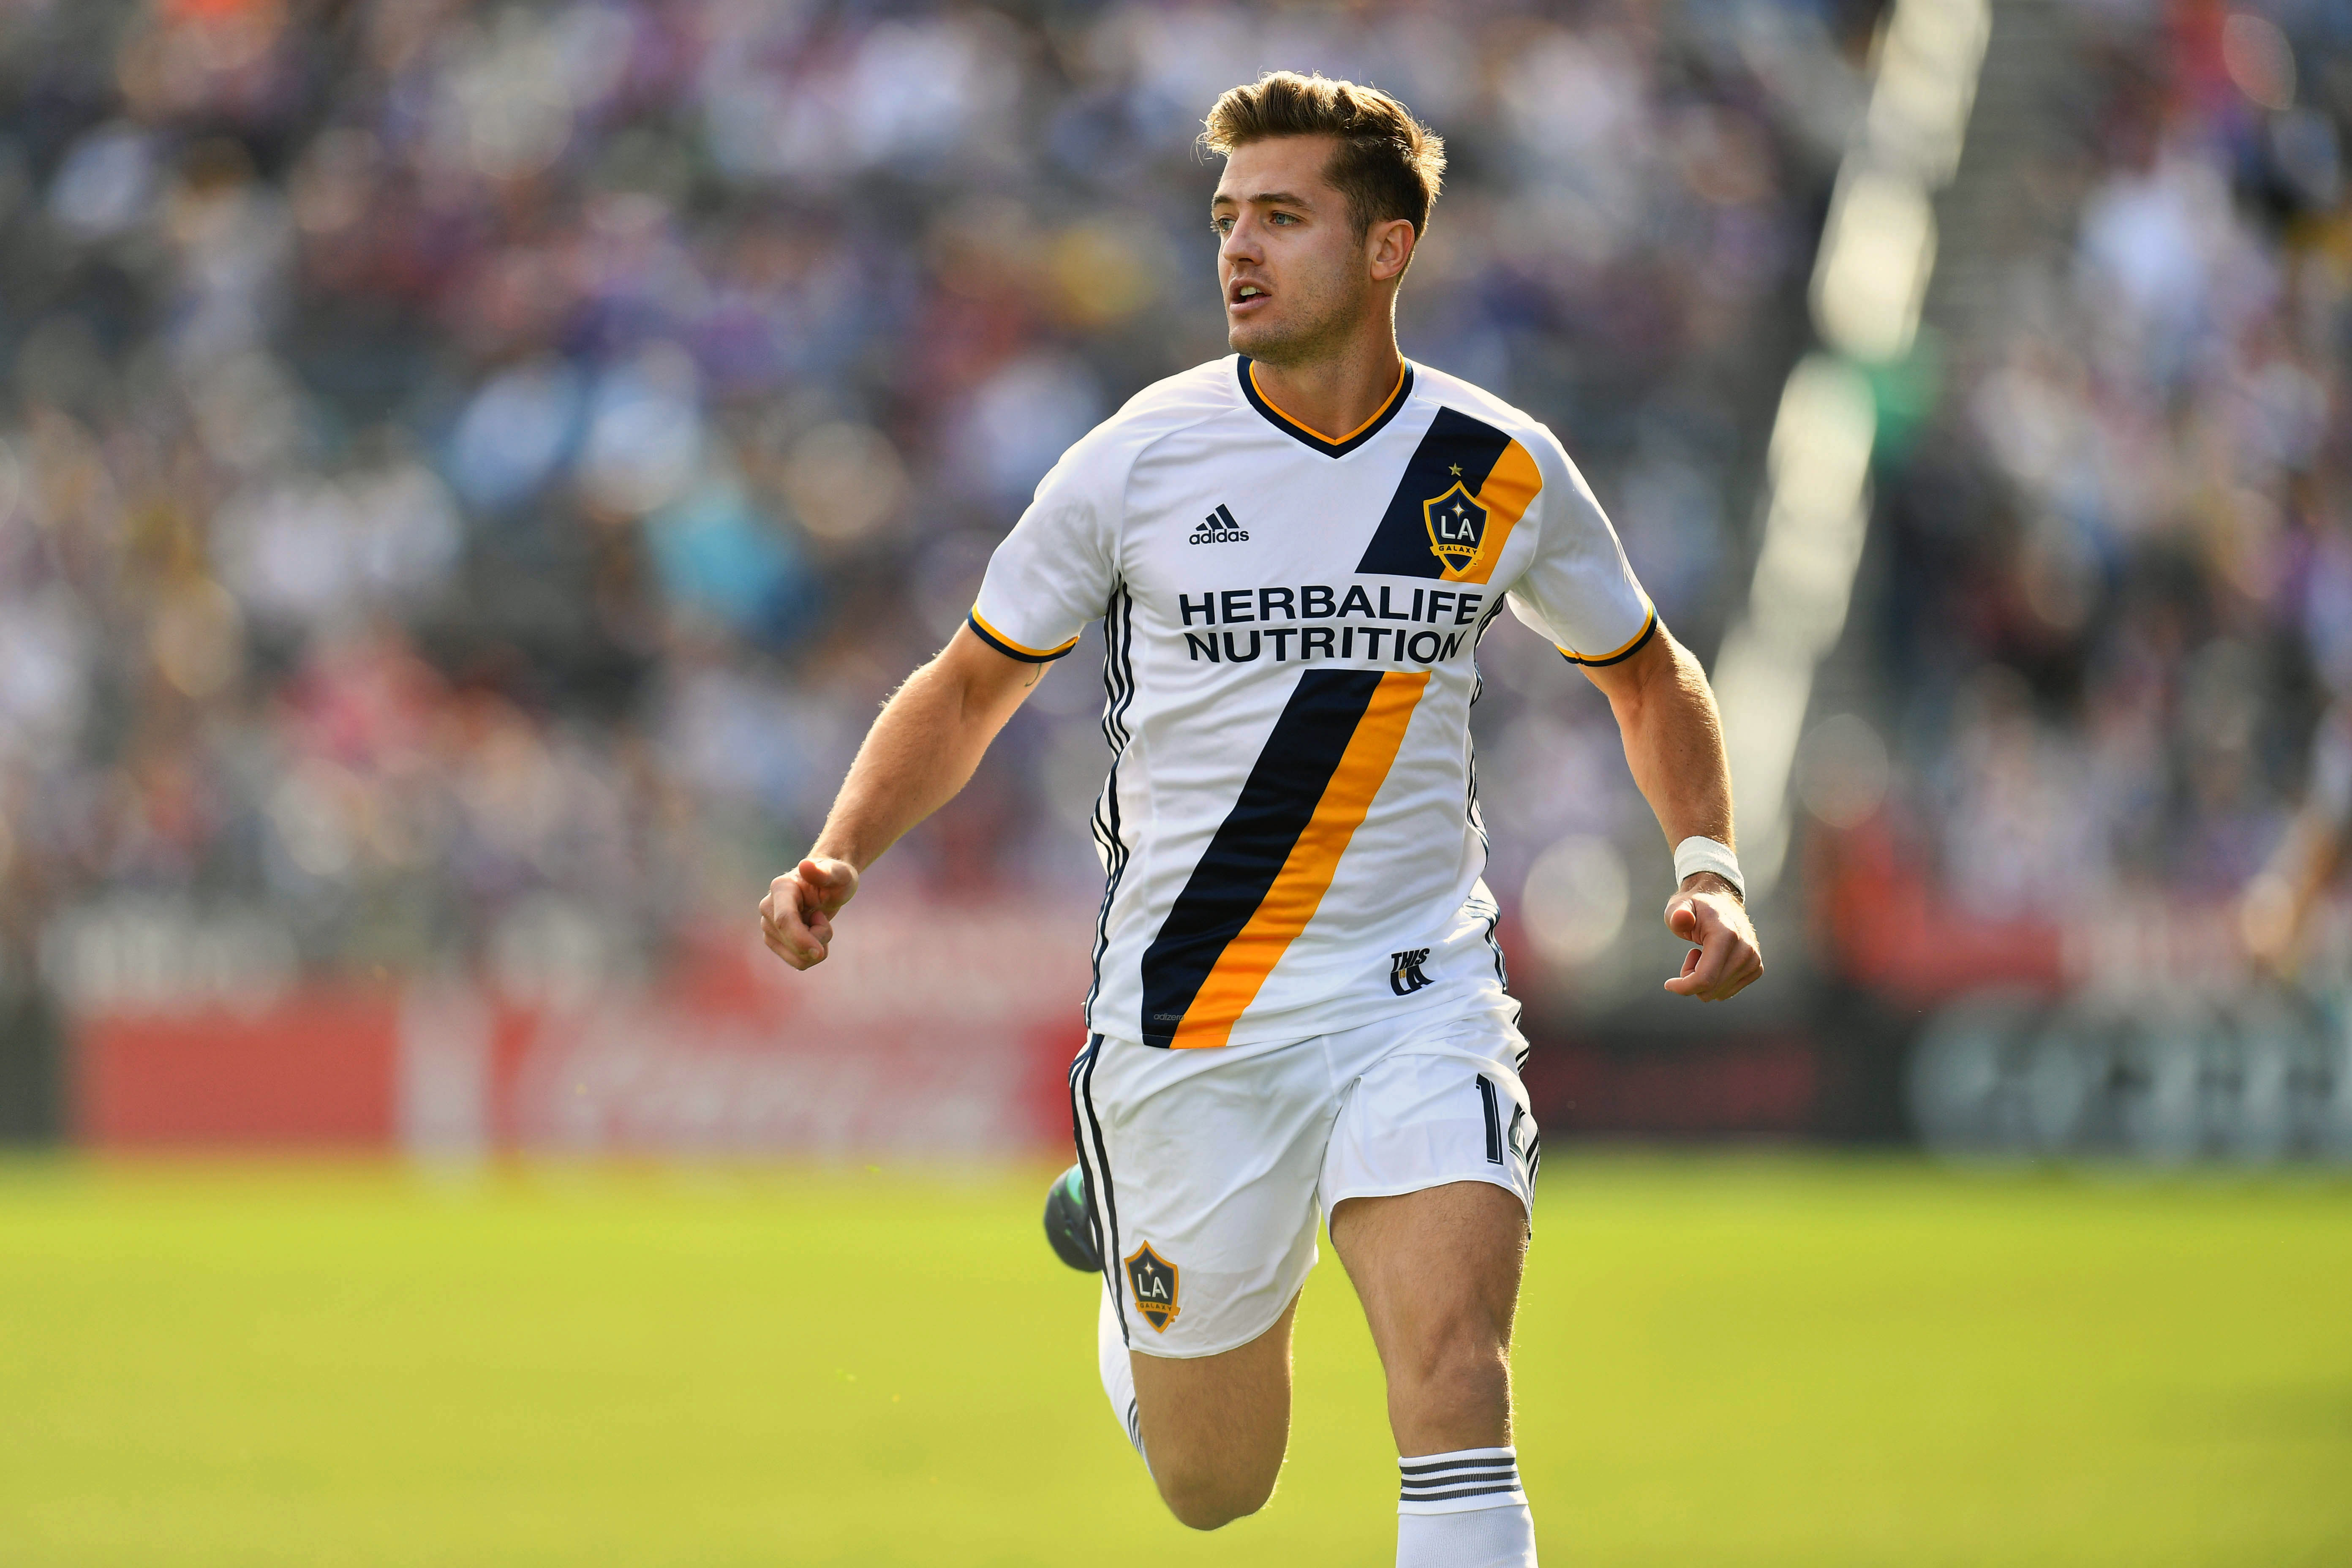 Robbie Rogers Bulge Eric Decker gets shirt...